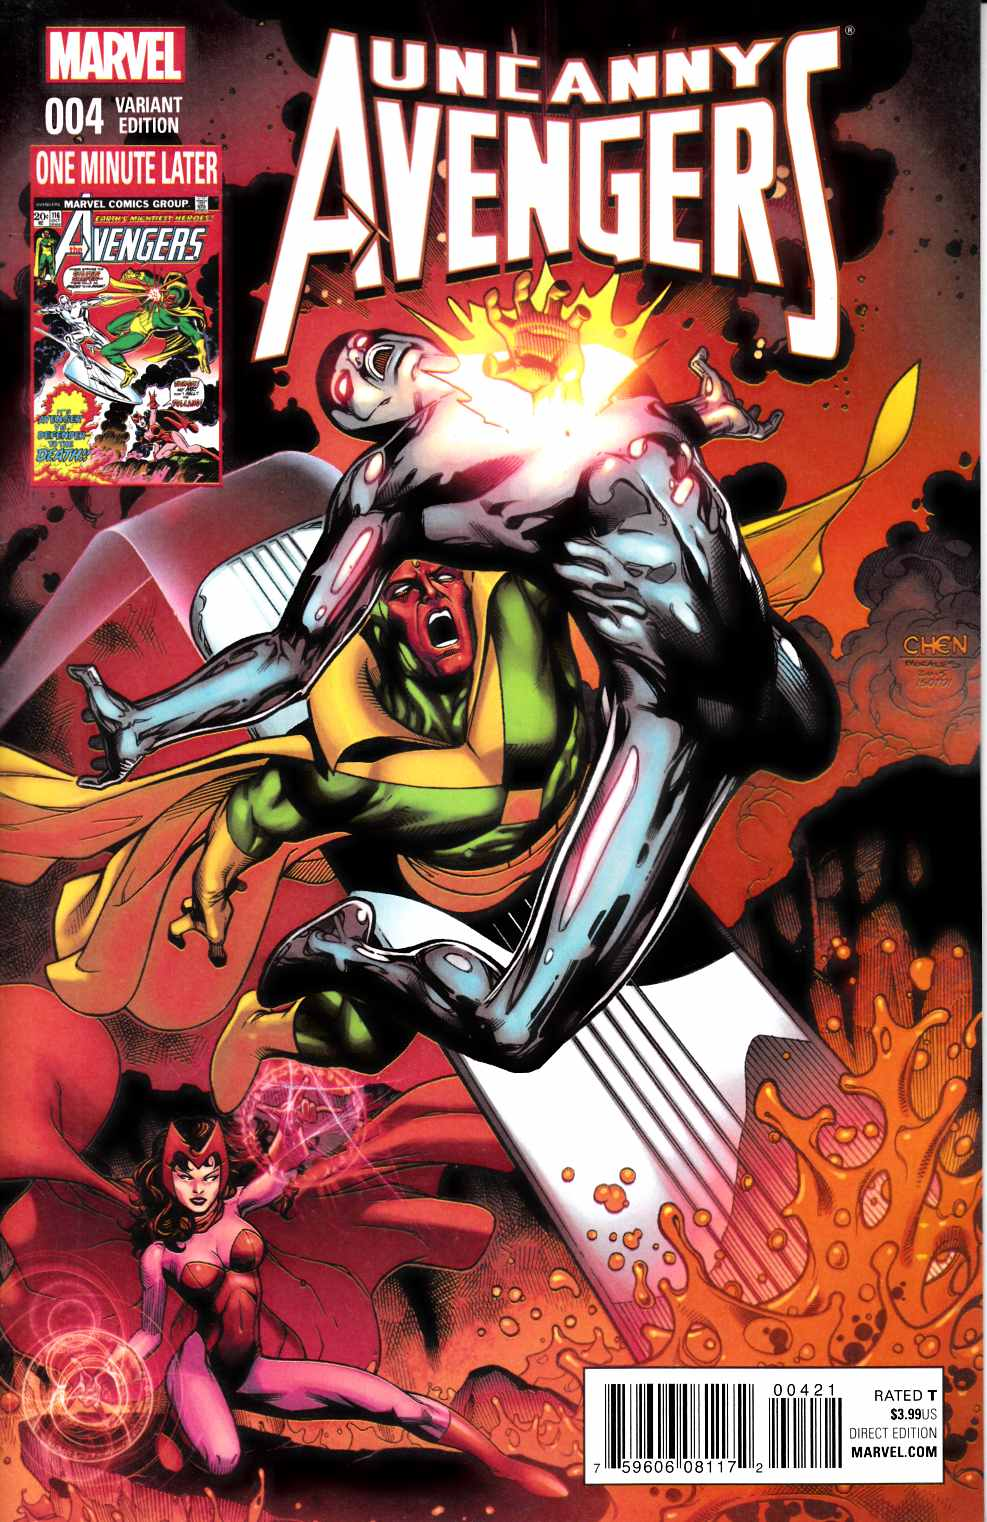 Avengers Variant Cover Marvel Comic View Enlarged Image